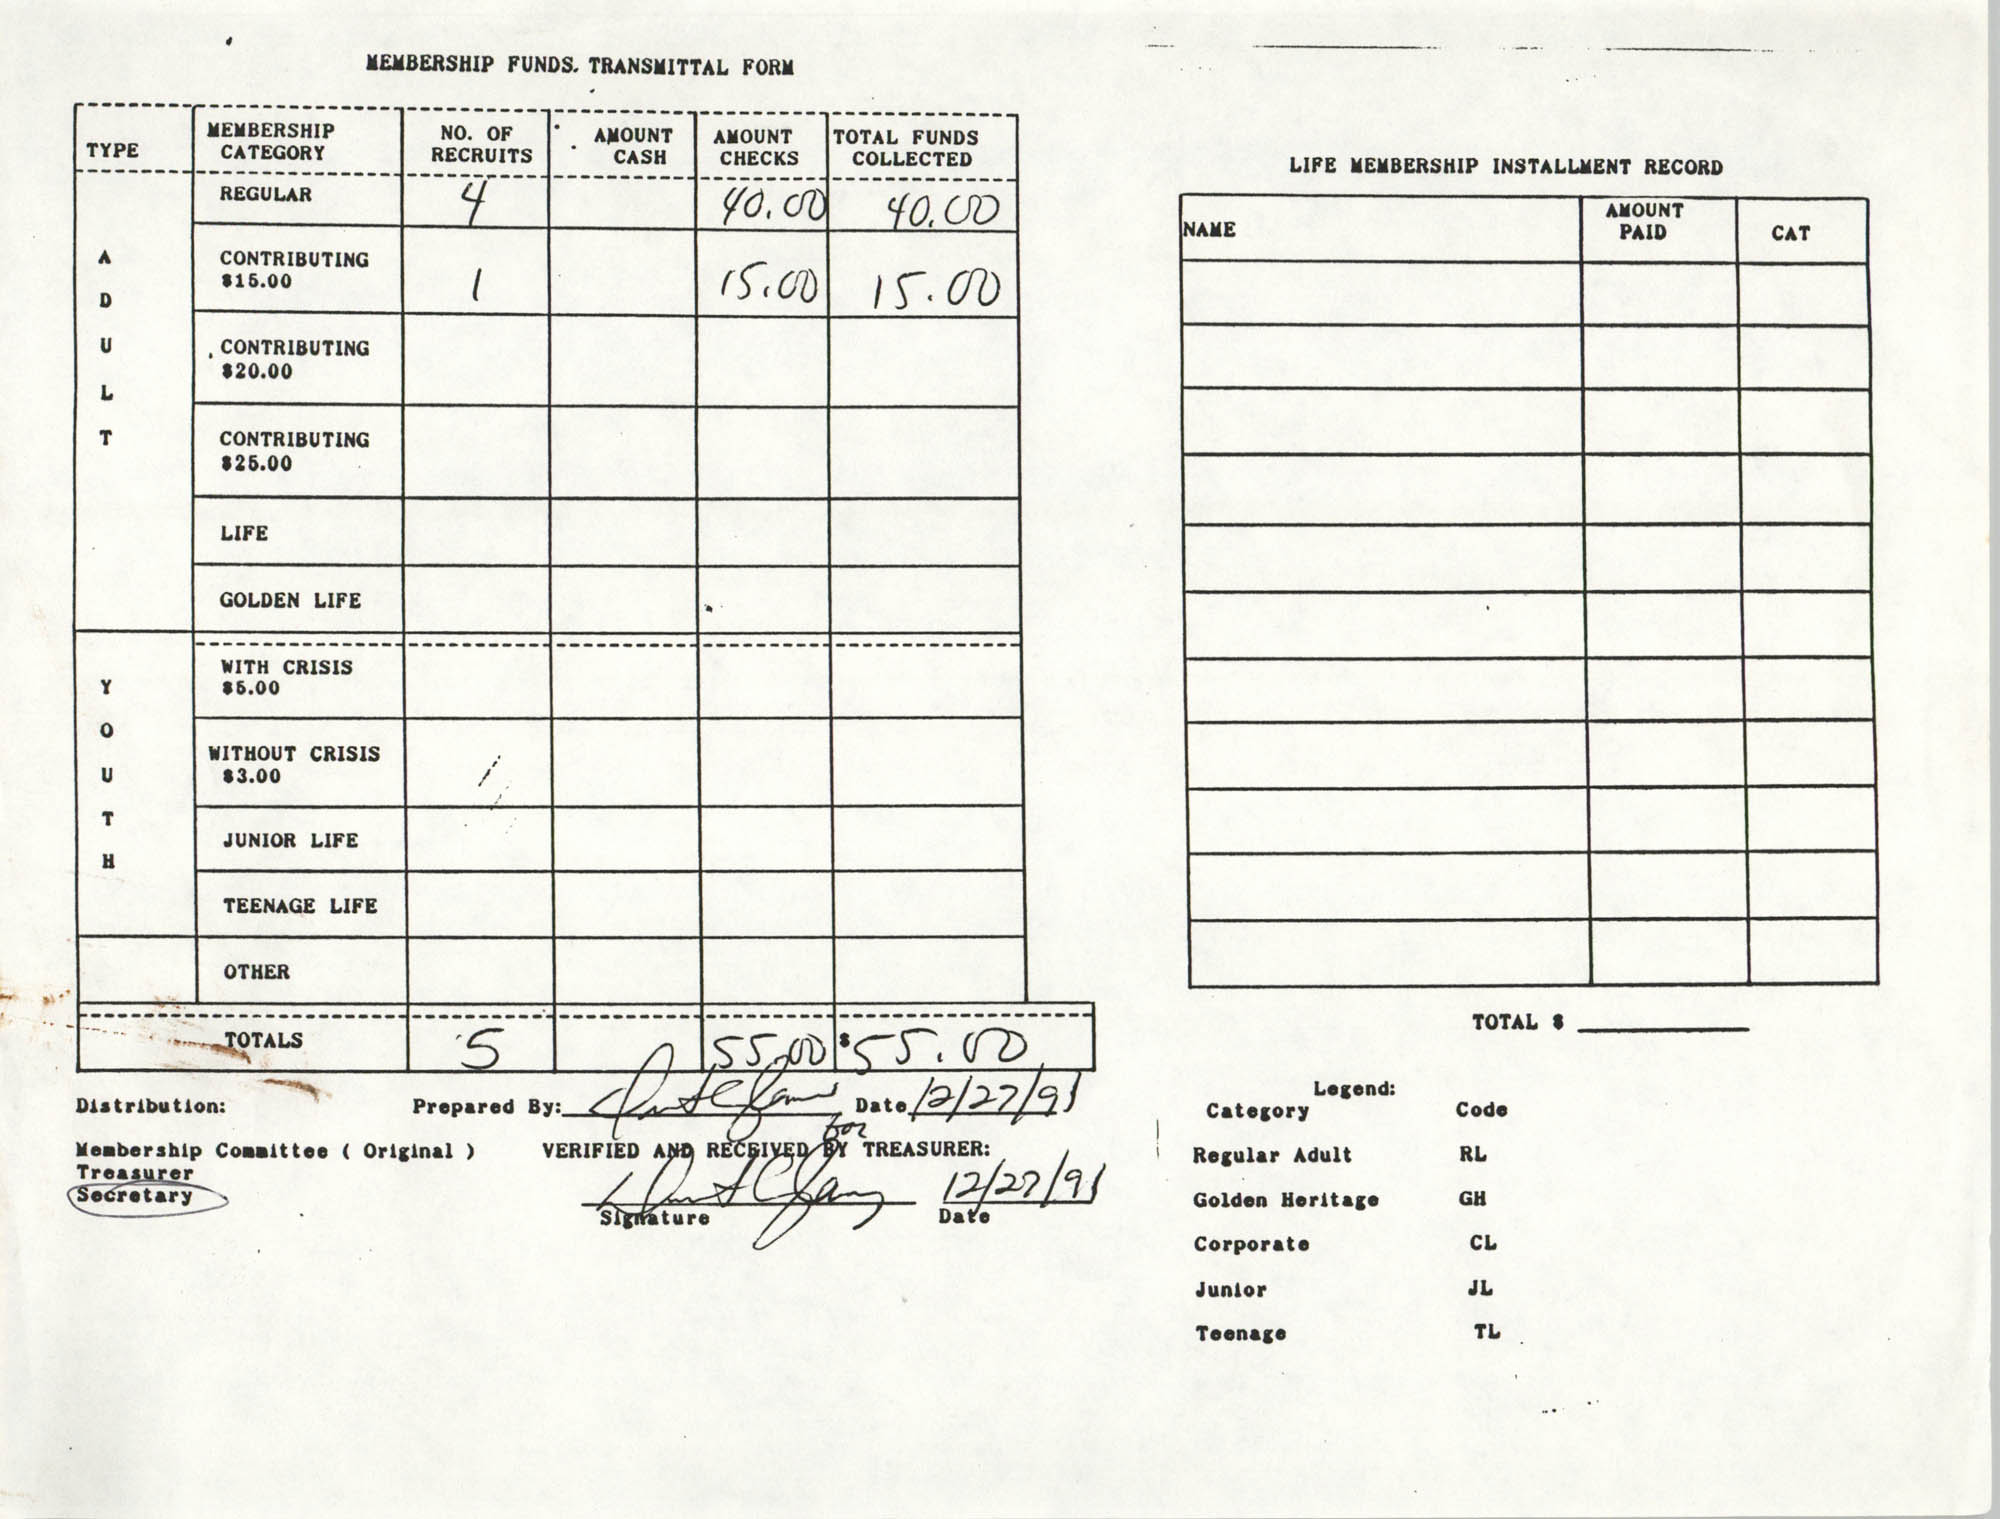 Charleston Branch of the NAACP Funds Transmittal Forms, December 1991, Page 4